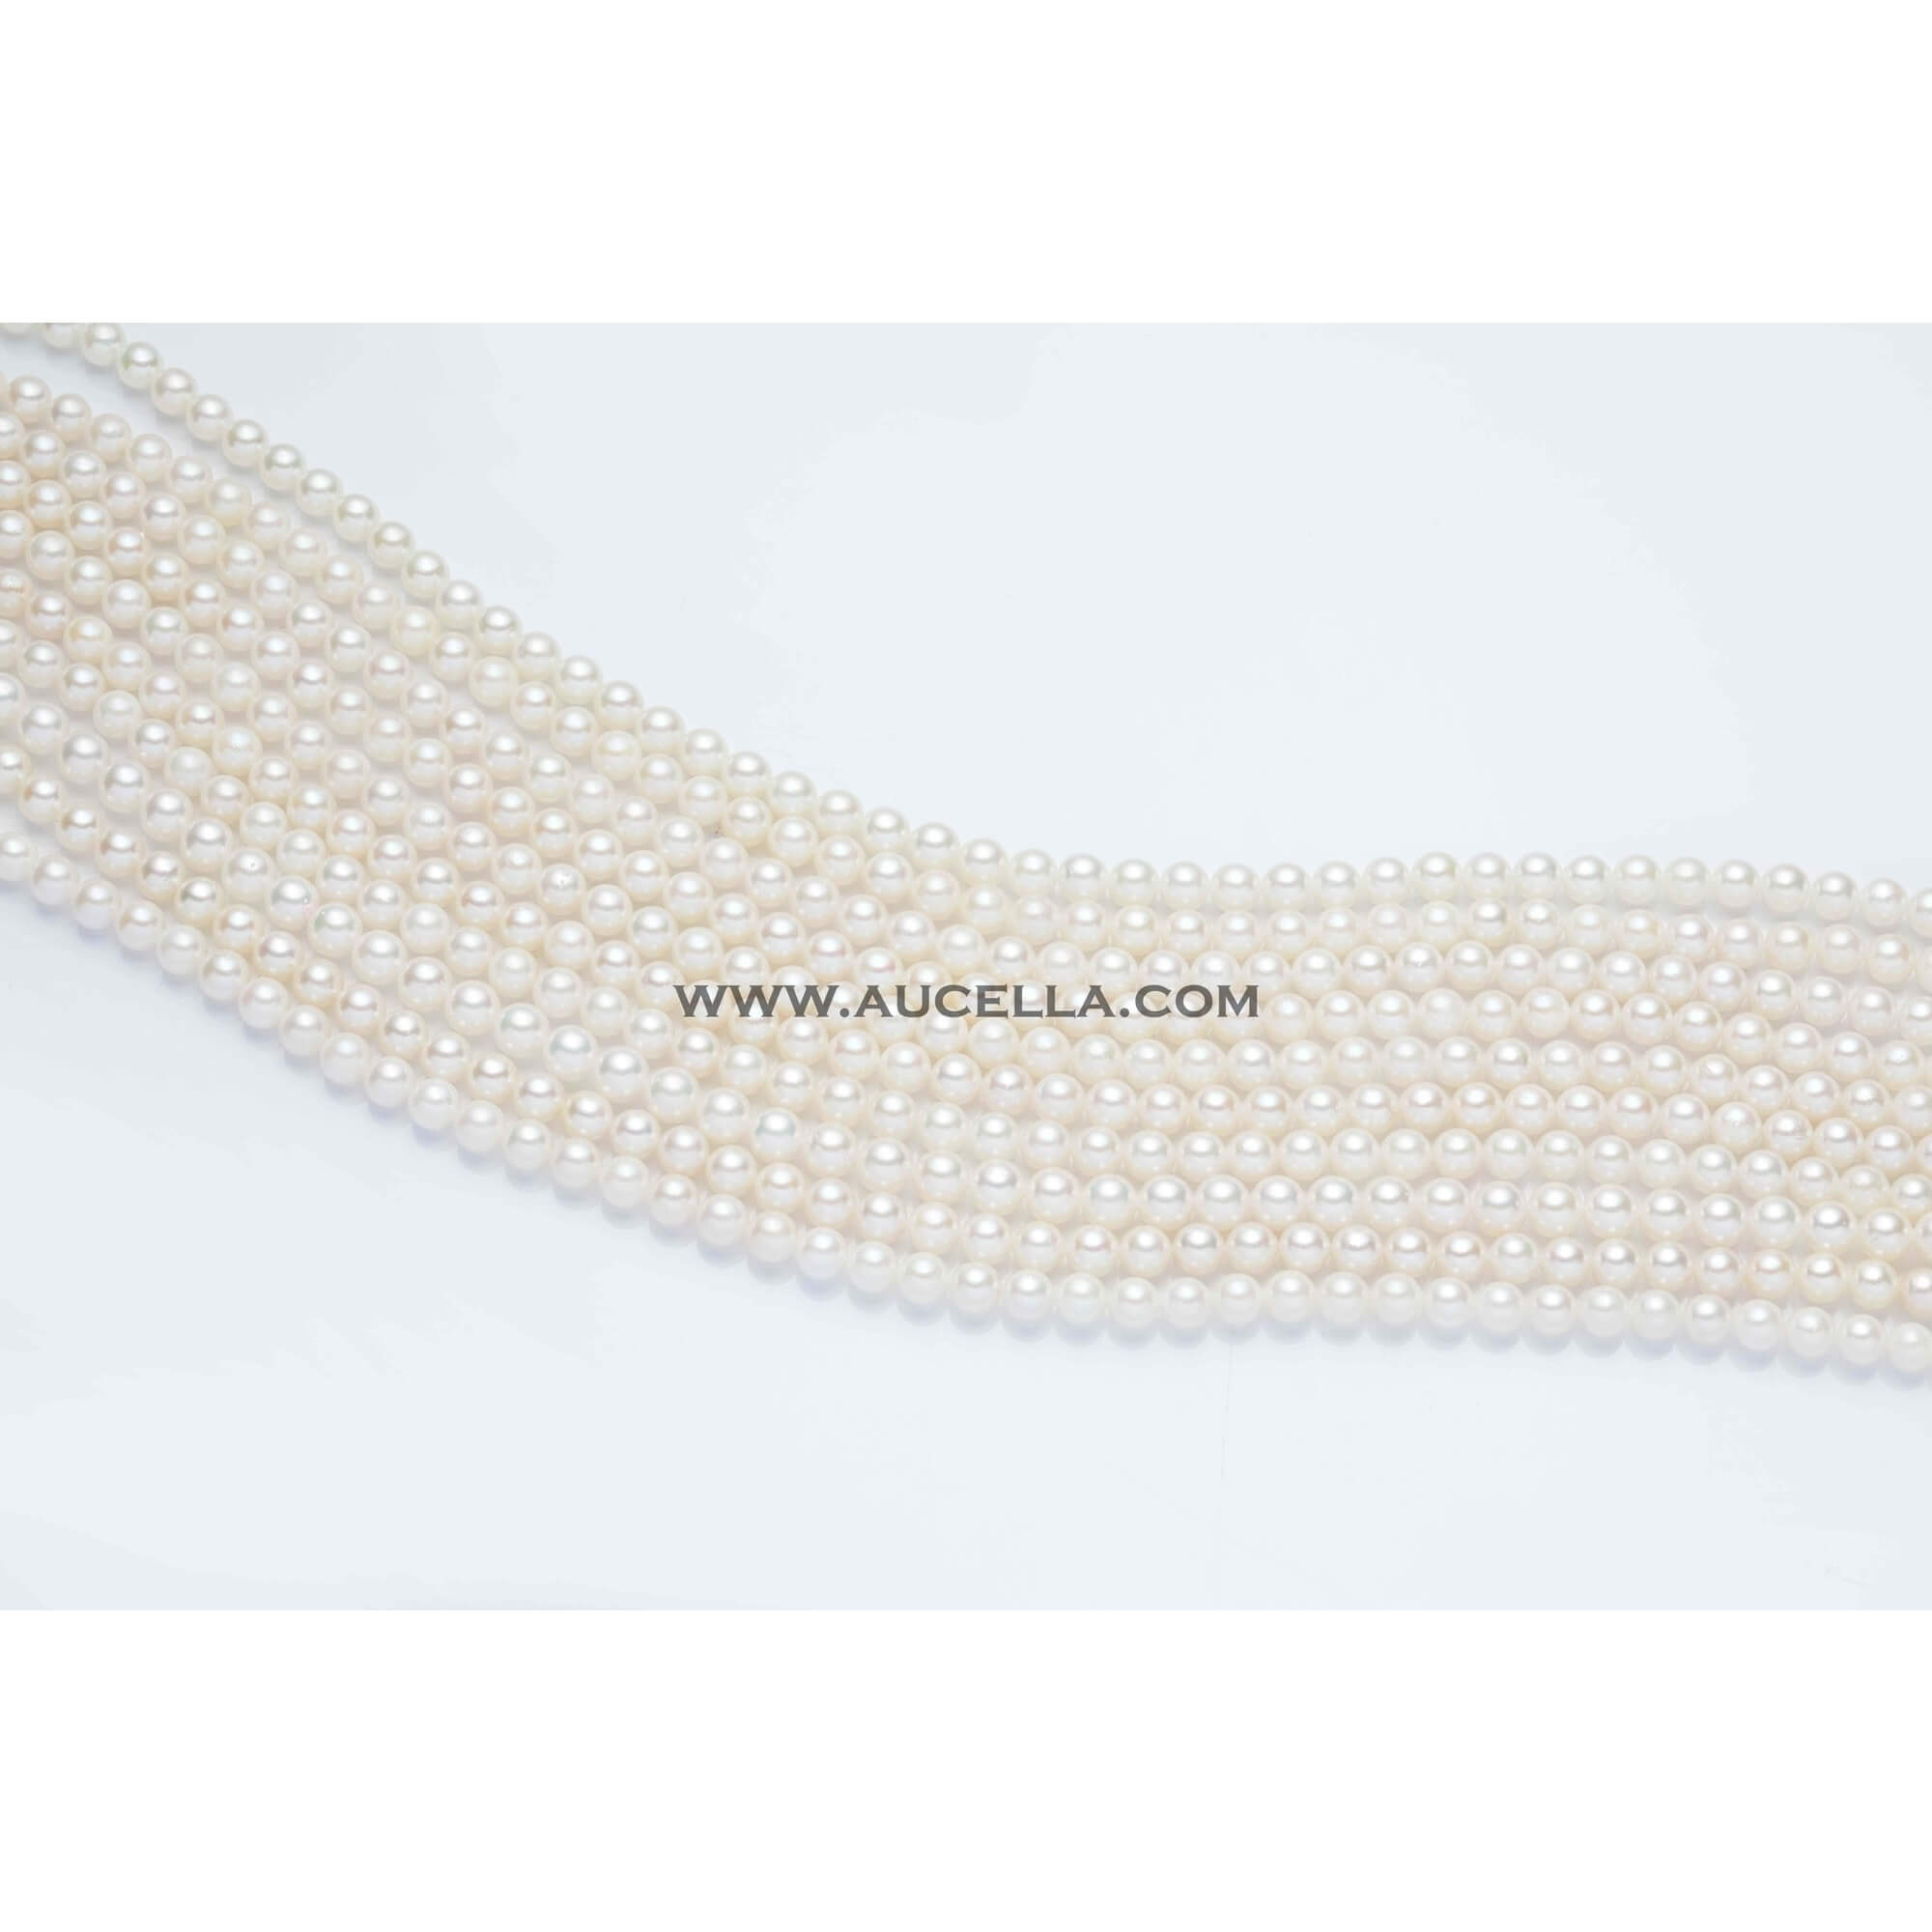 Japan akoya pearls strands mm 6x5,5 A